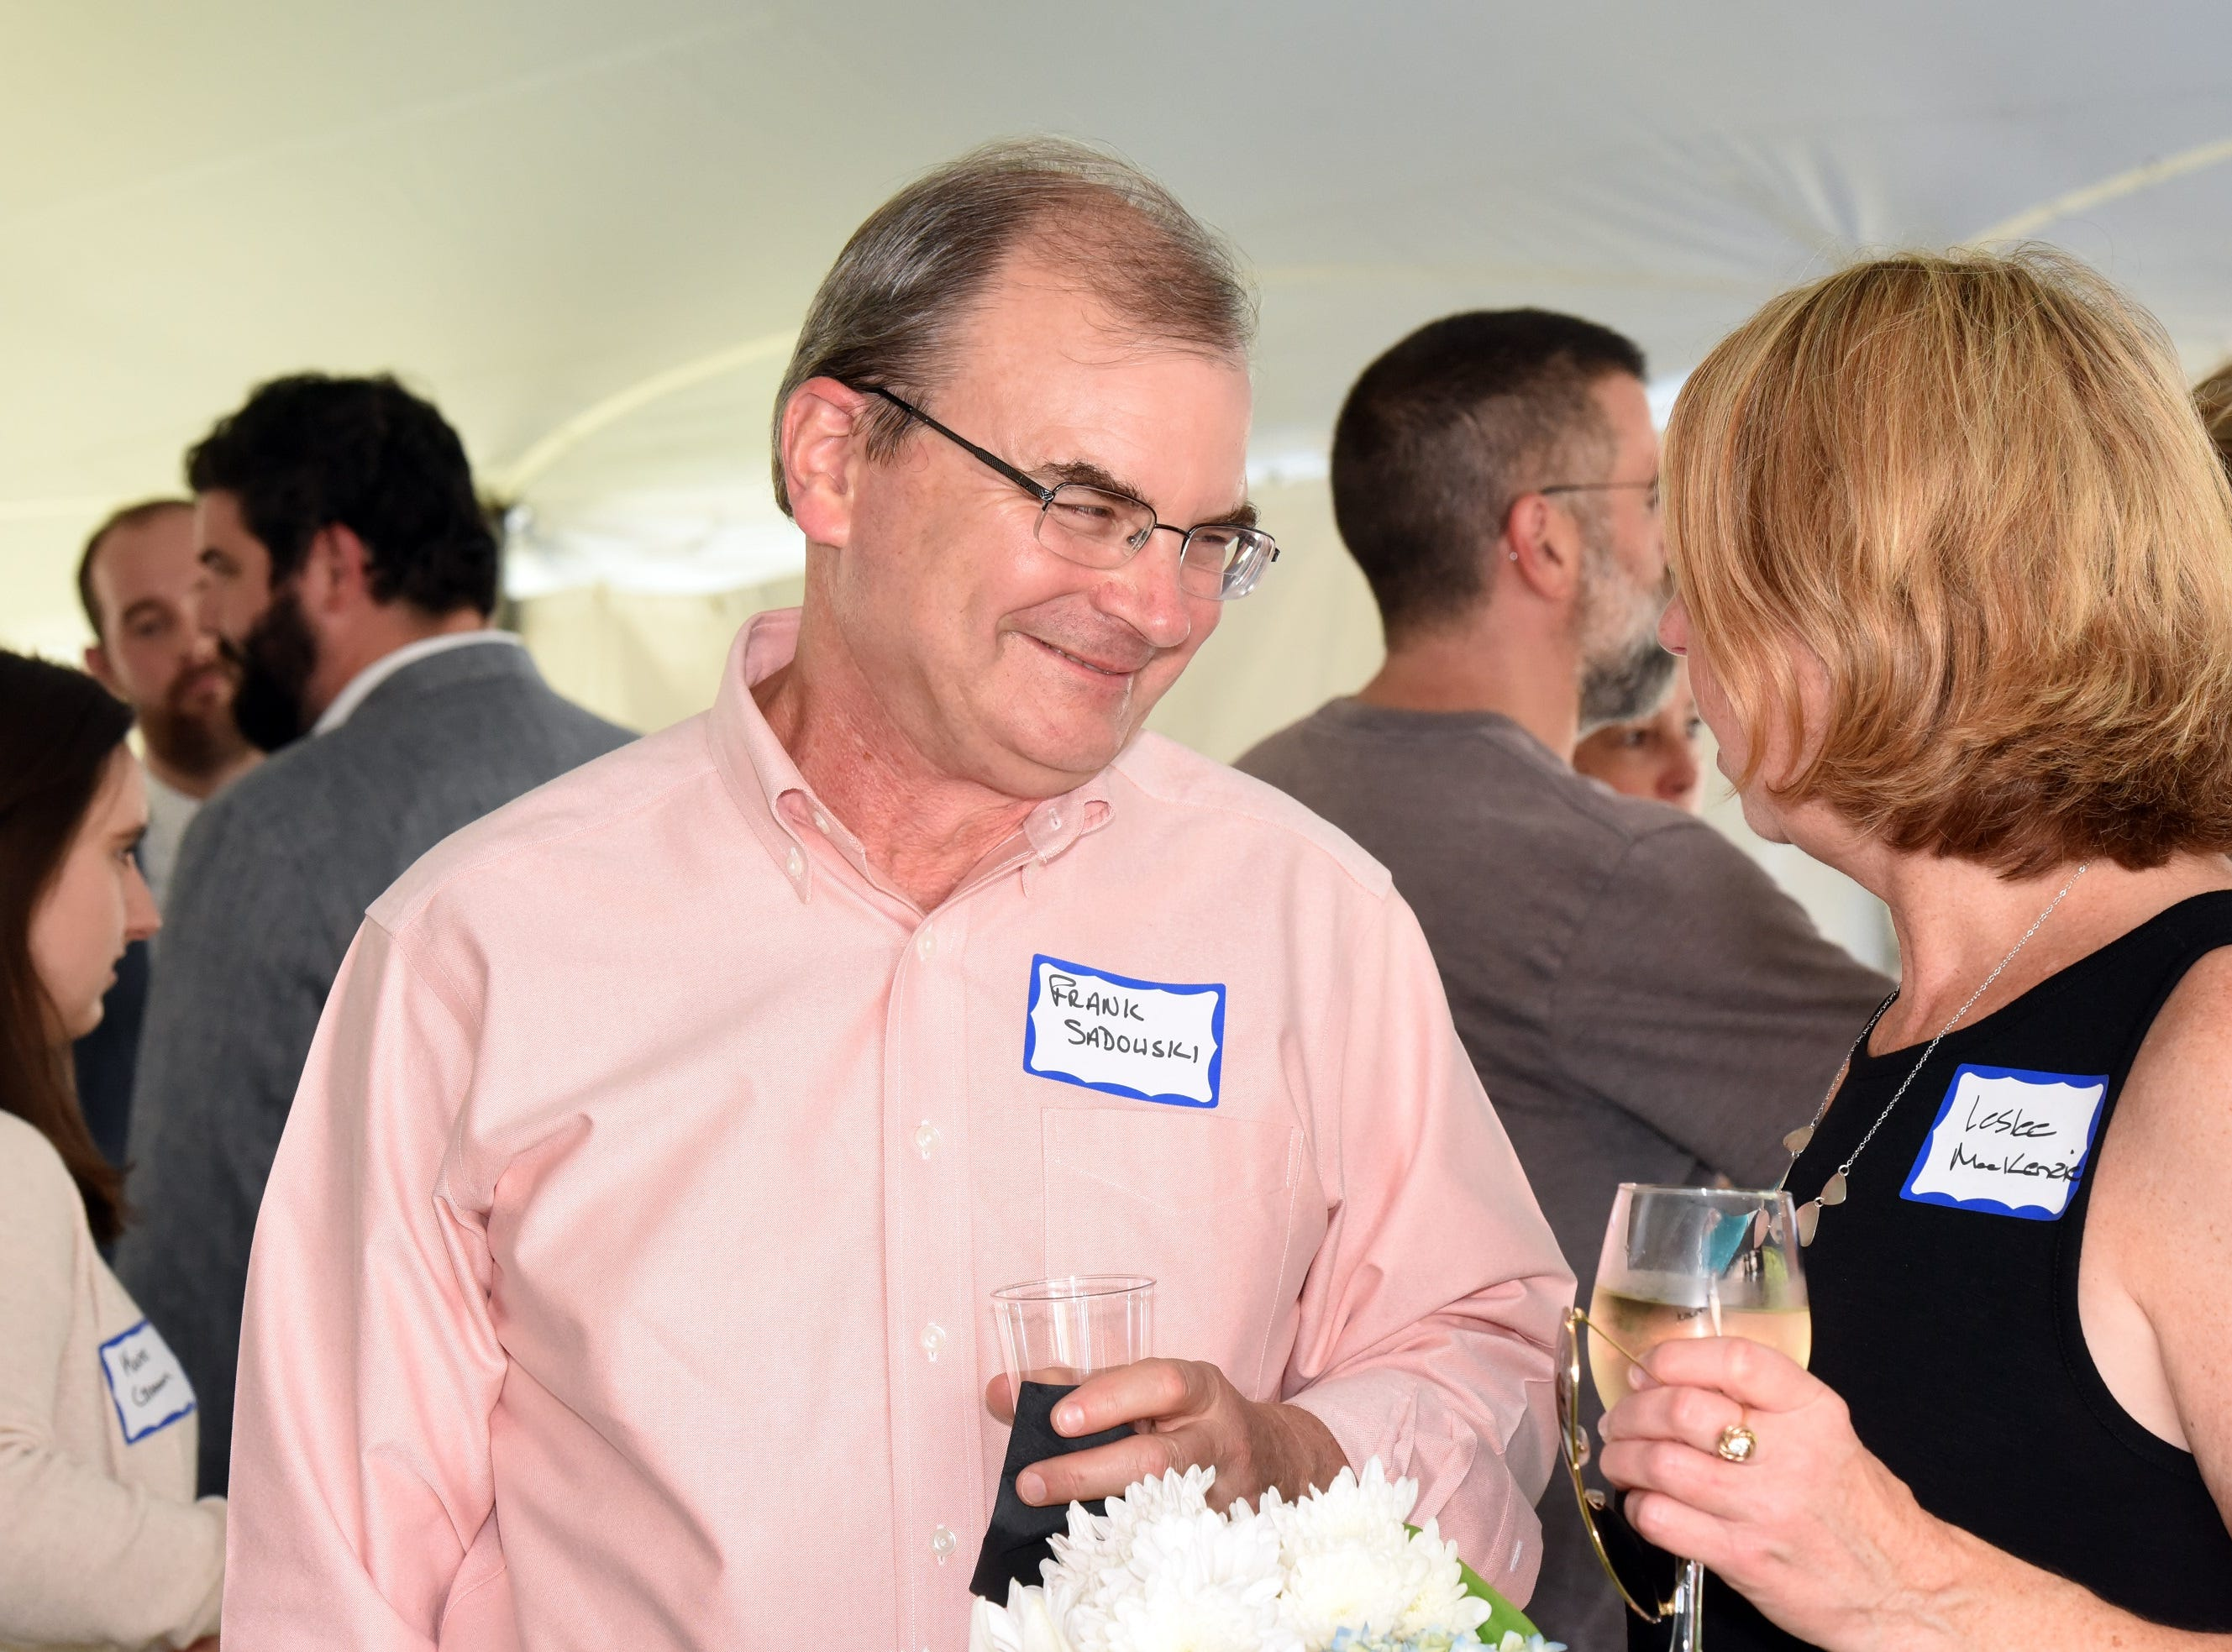 Frank Sadowski of Gallagher Flynn chats with Leslee MacKenzie as they attend the Coldwell Banker Hickok & Boardman 60th Anniversary on September 13, 2018, with current and past agents and community leaders in Burlington, VT.